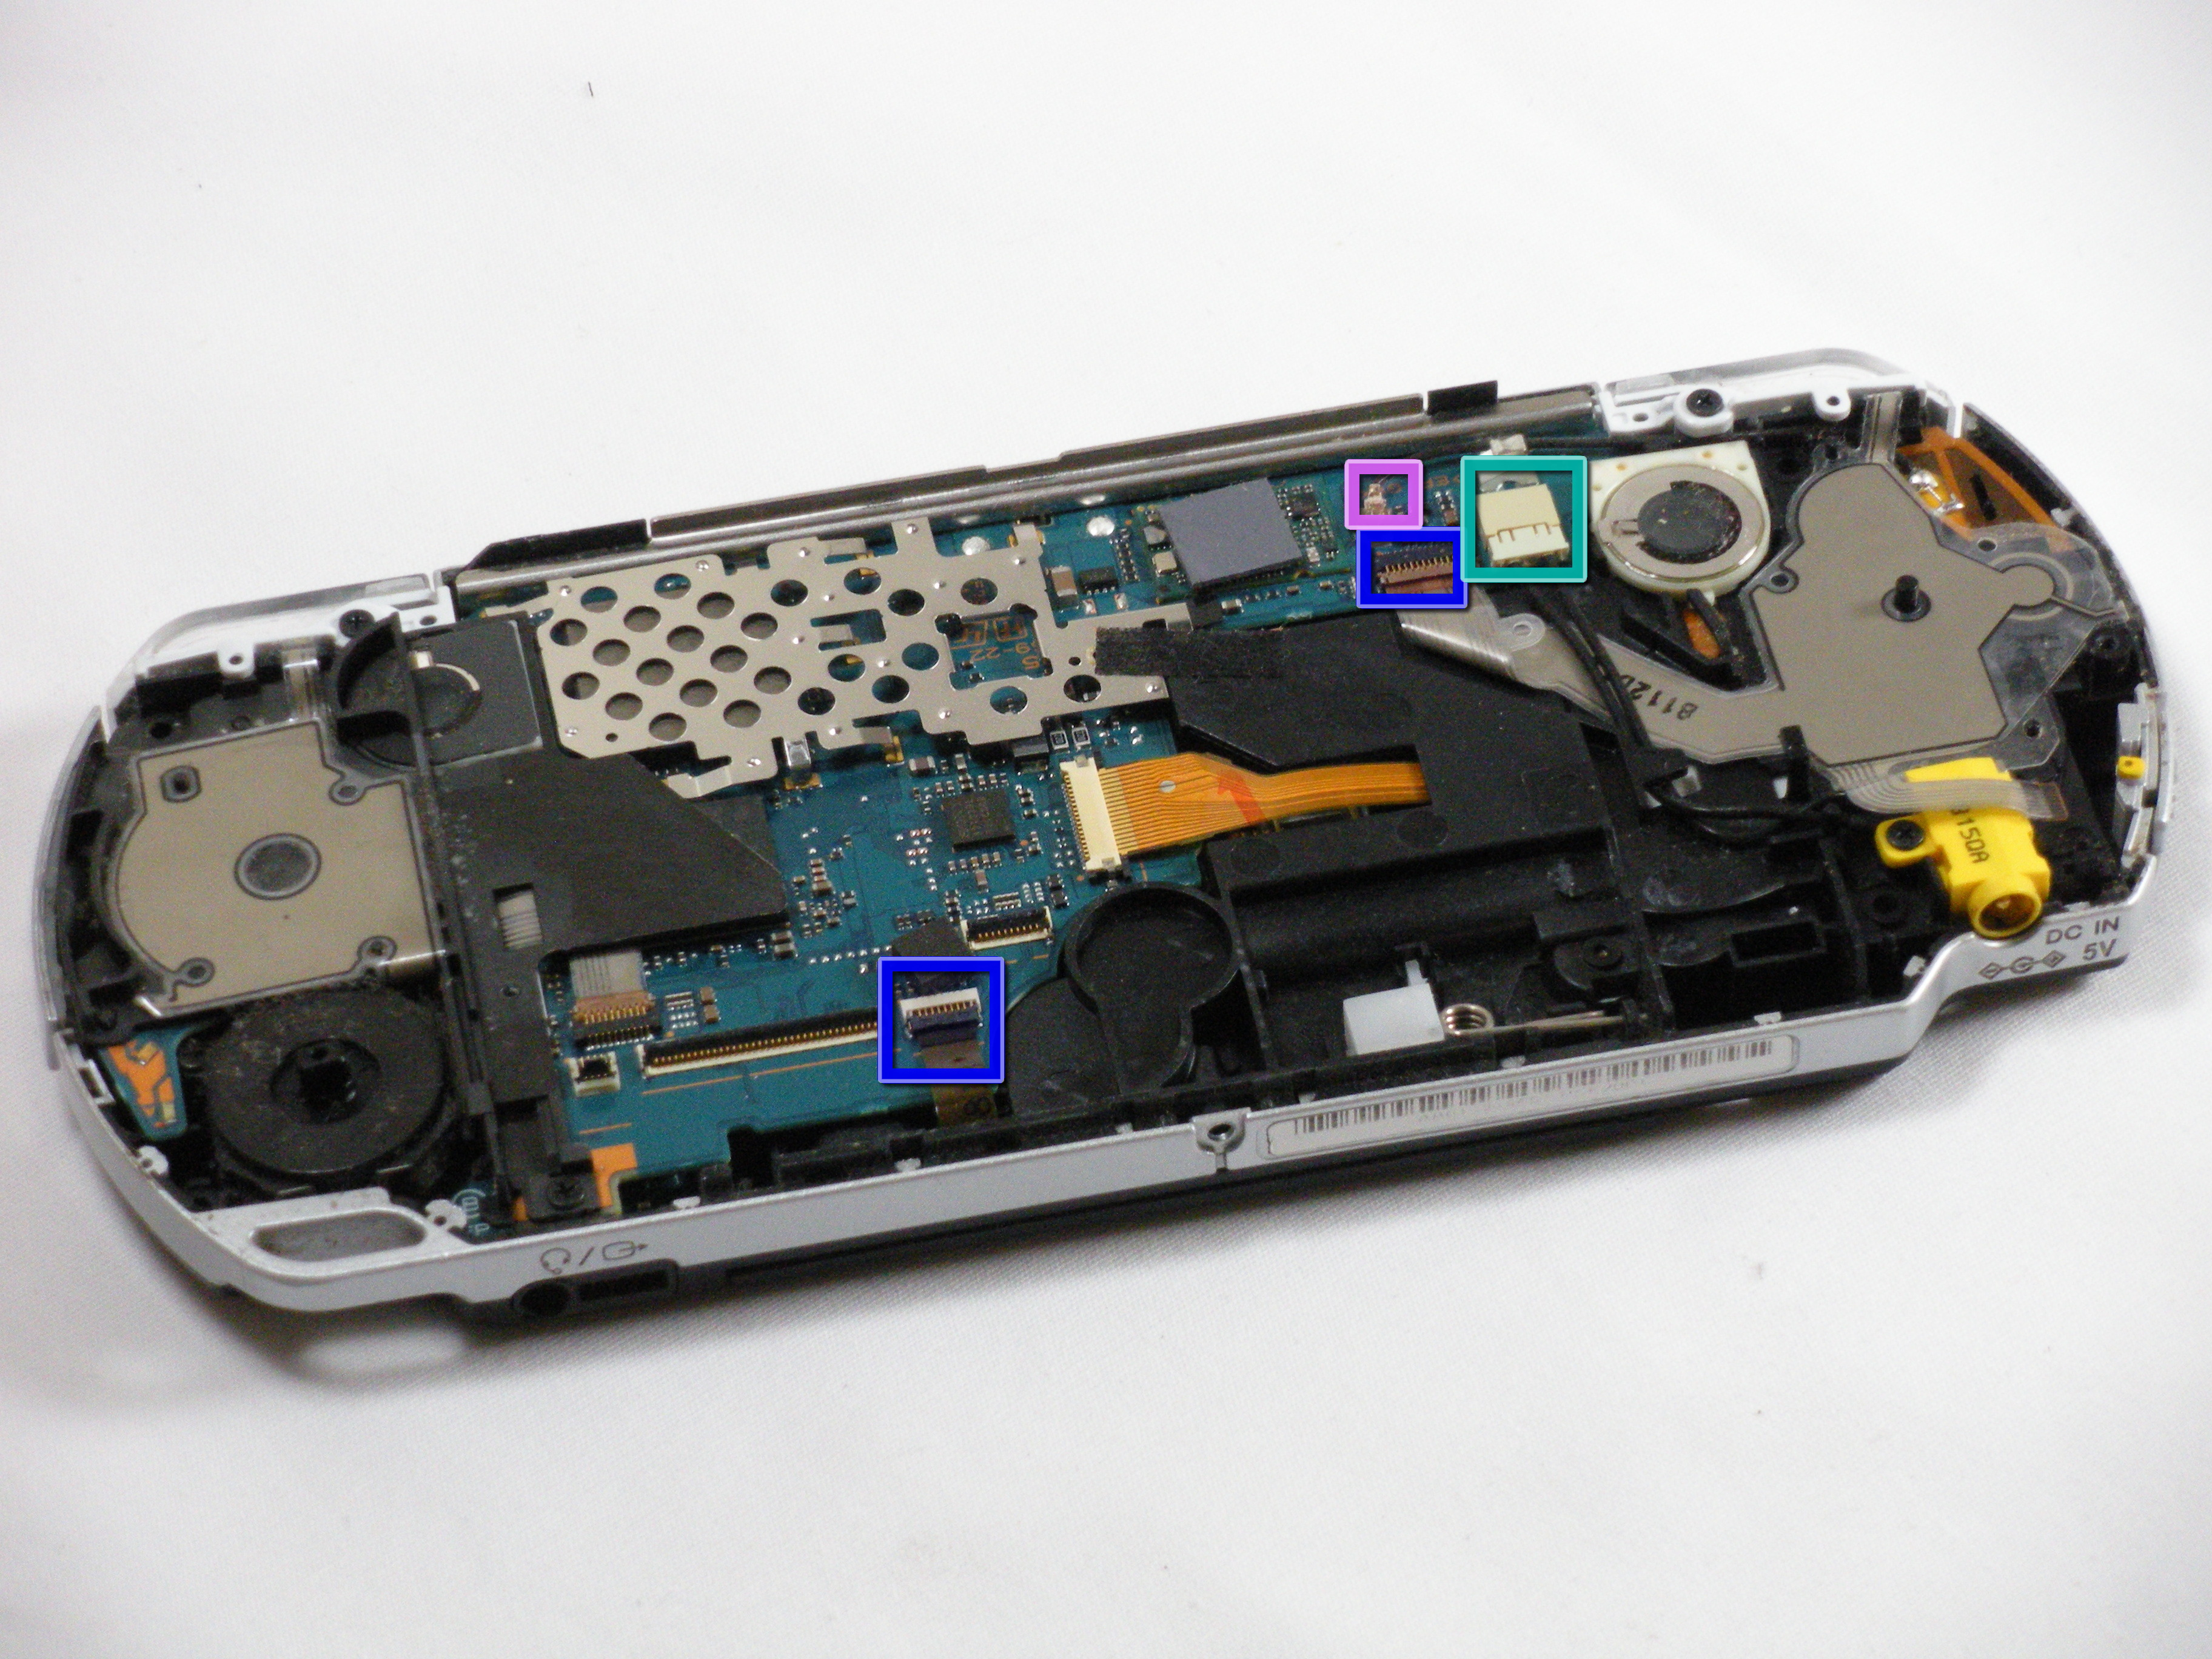 psp 2000 logic board replacement ifixit repair guide. Black Bedroom Furniture Sets. Home Design Ideas